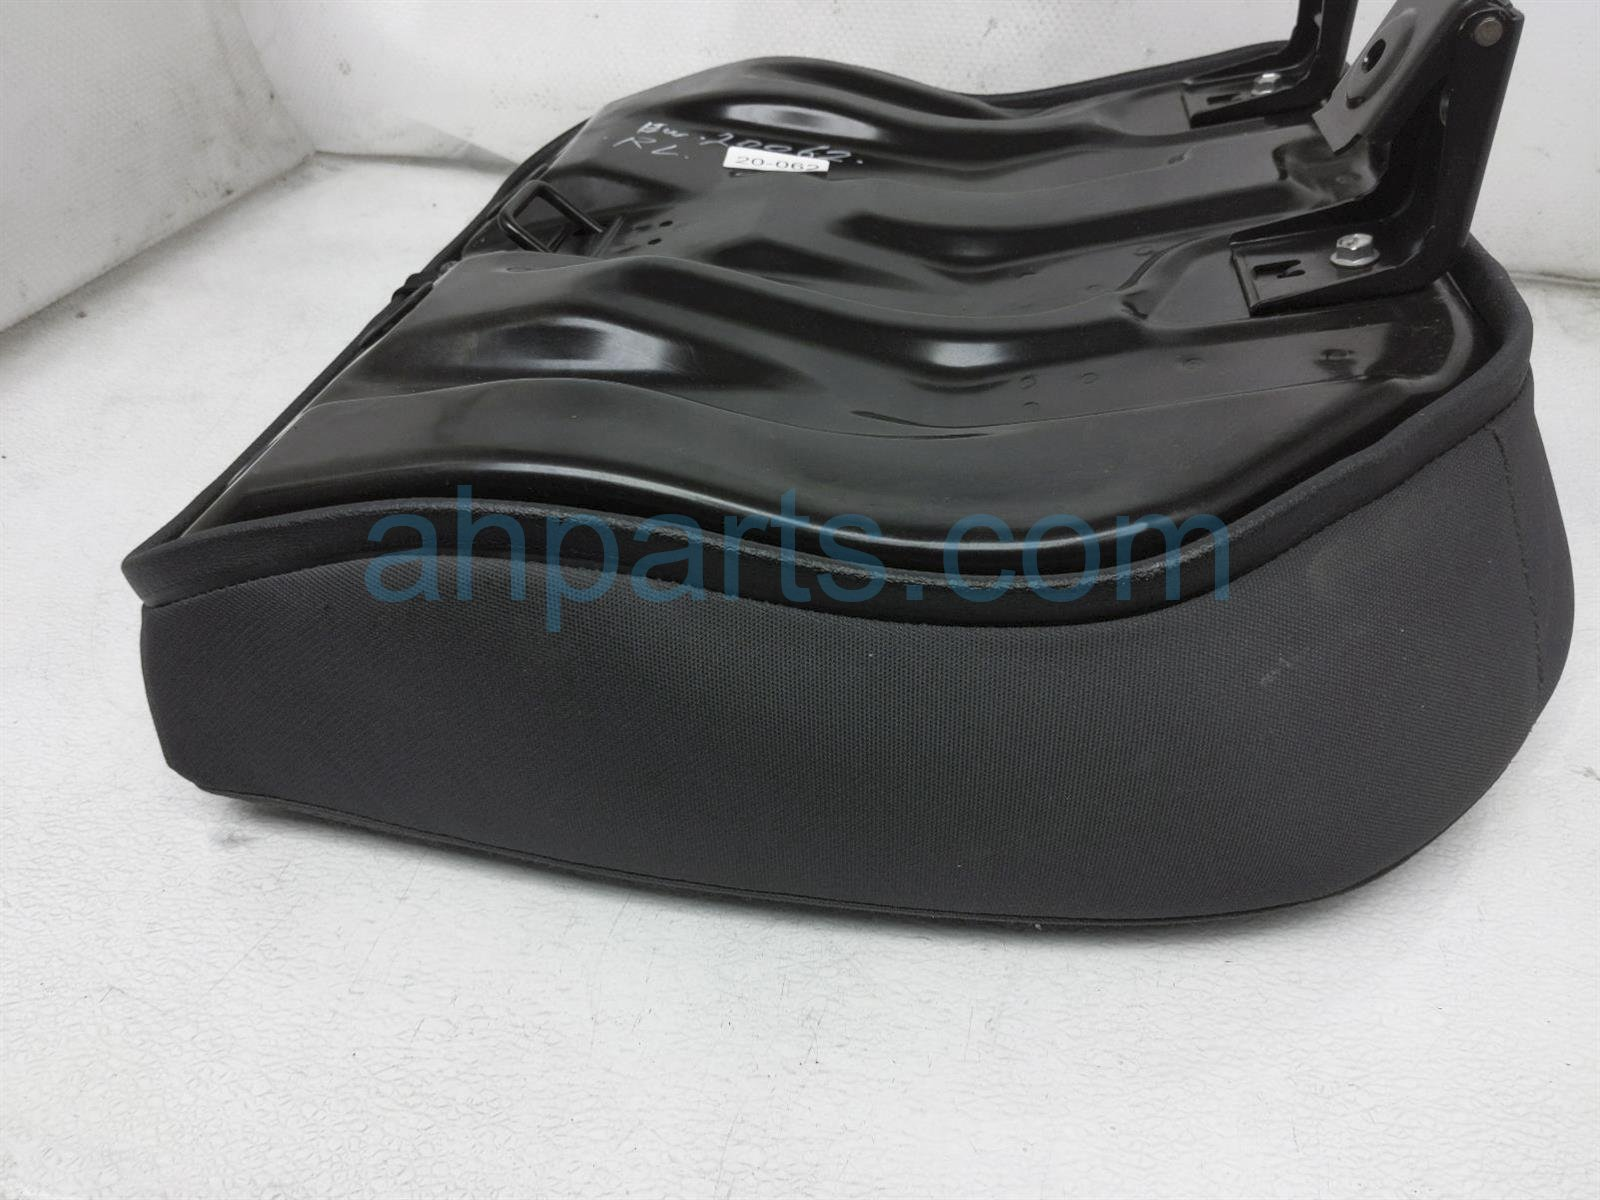 Sold 2017 Toyota Tacoma Back (2nd Row) Rear Driver Seat Lower Portion   Black 71076 04160 C0 Replacement